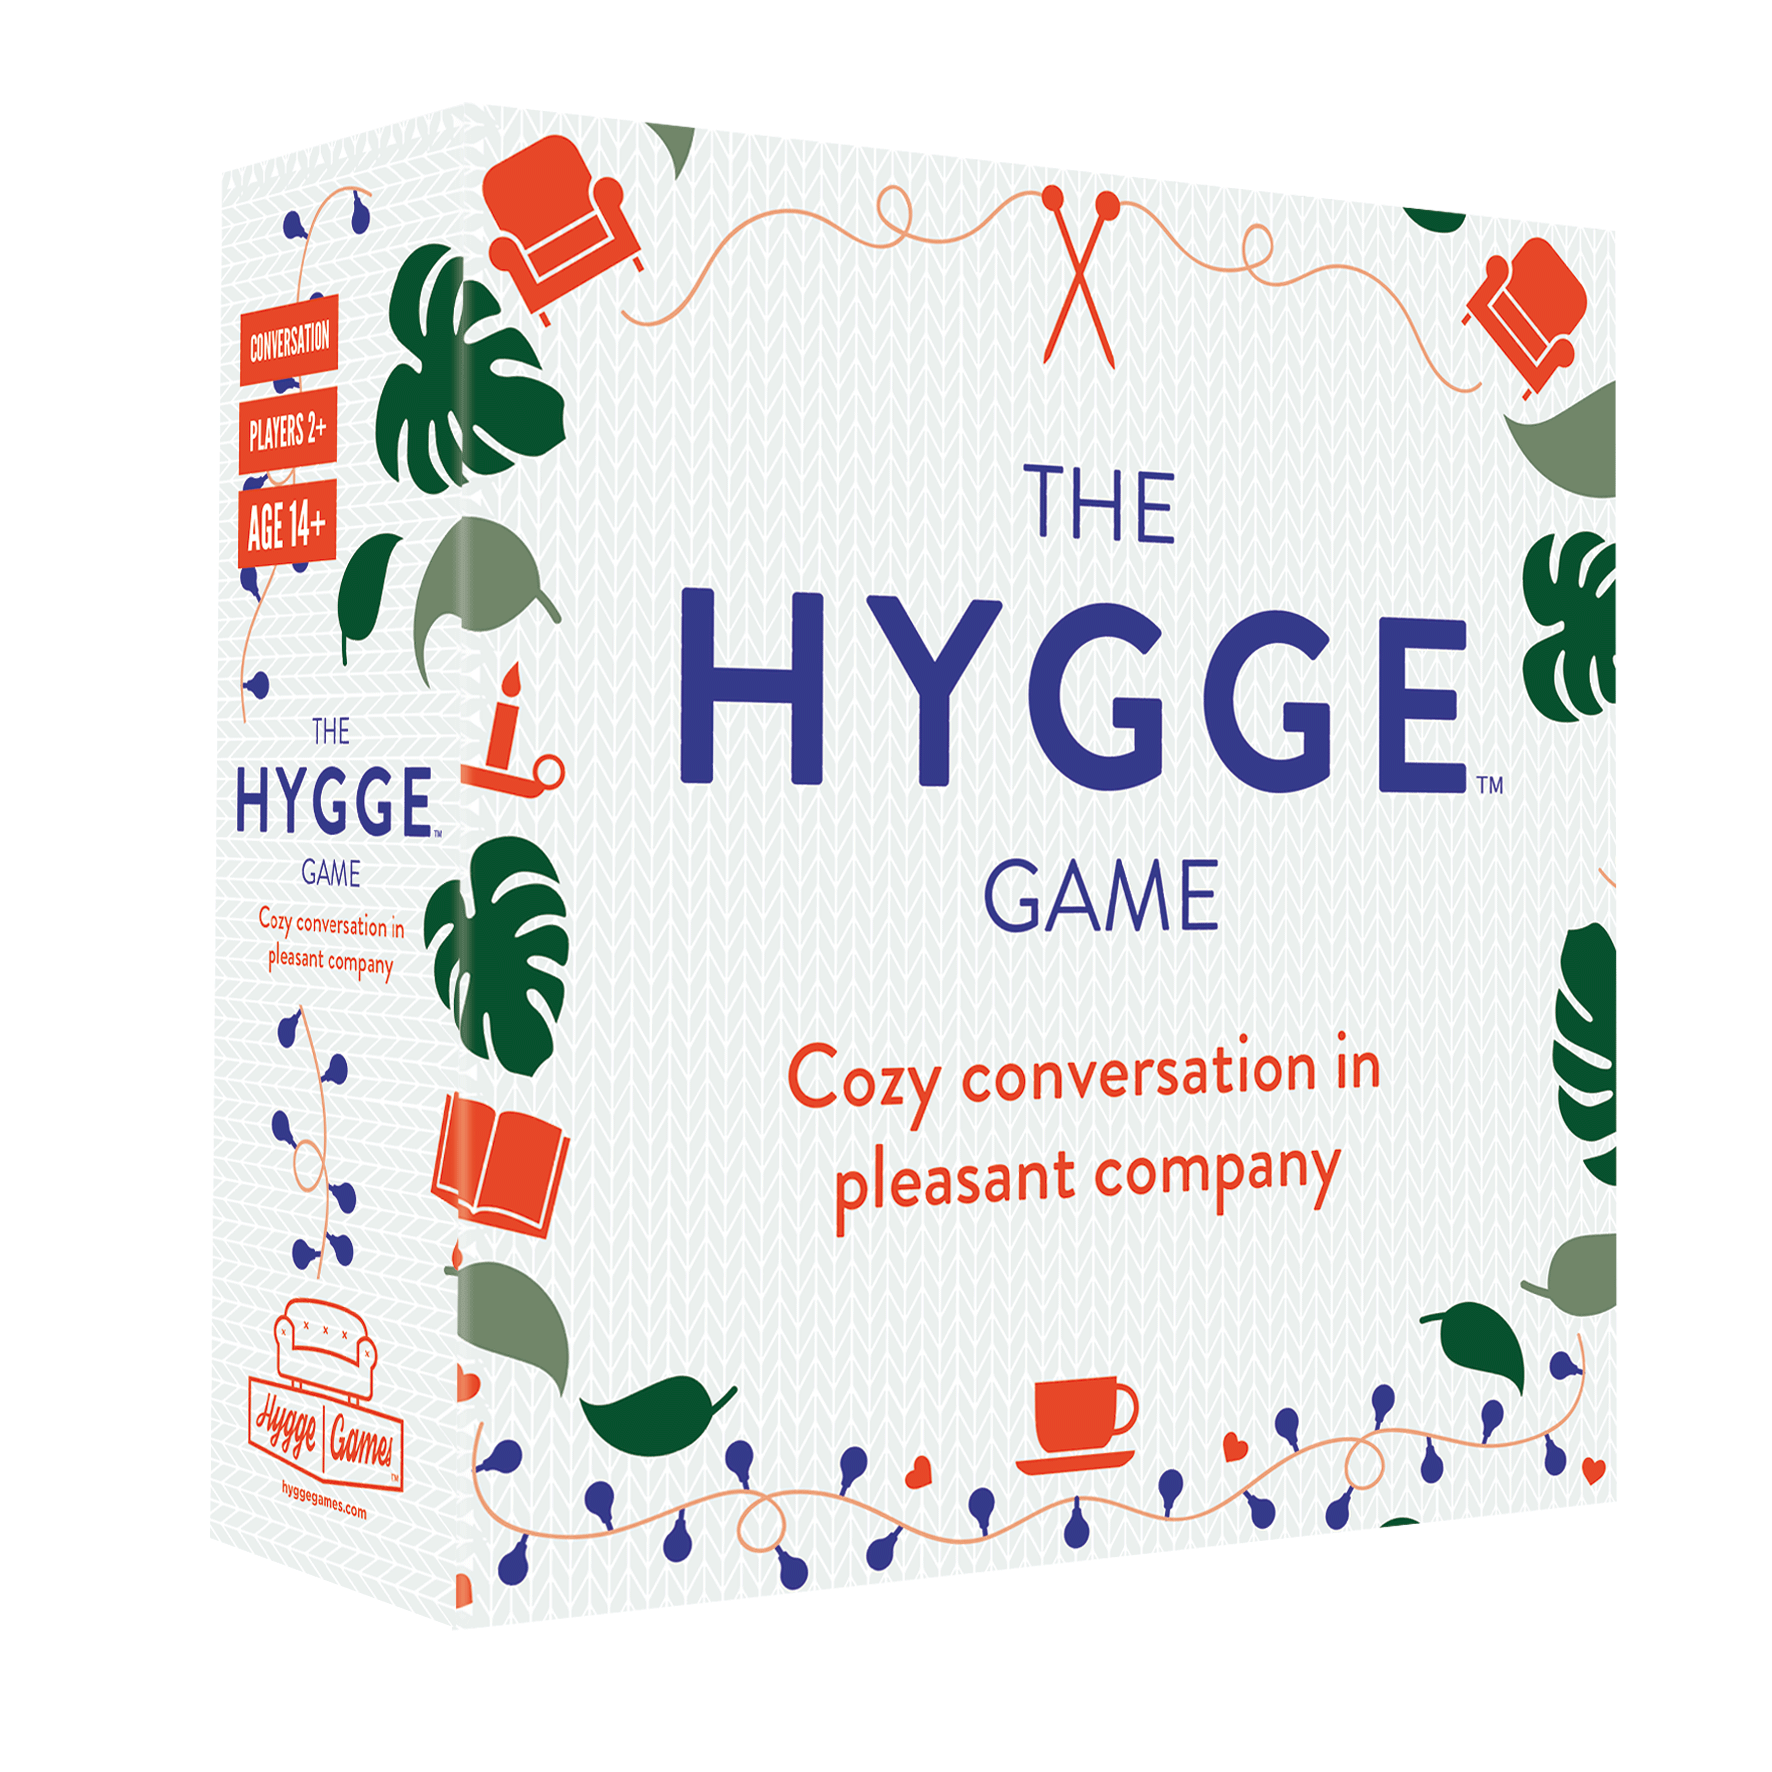 the Hygge game-1